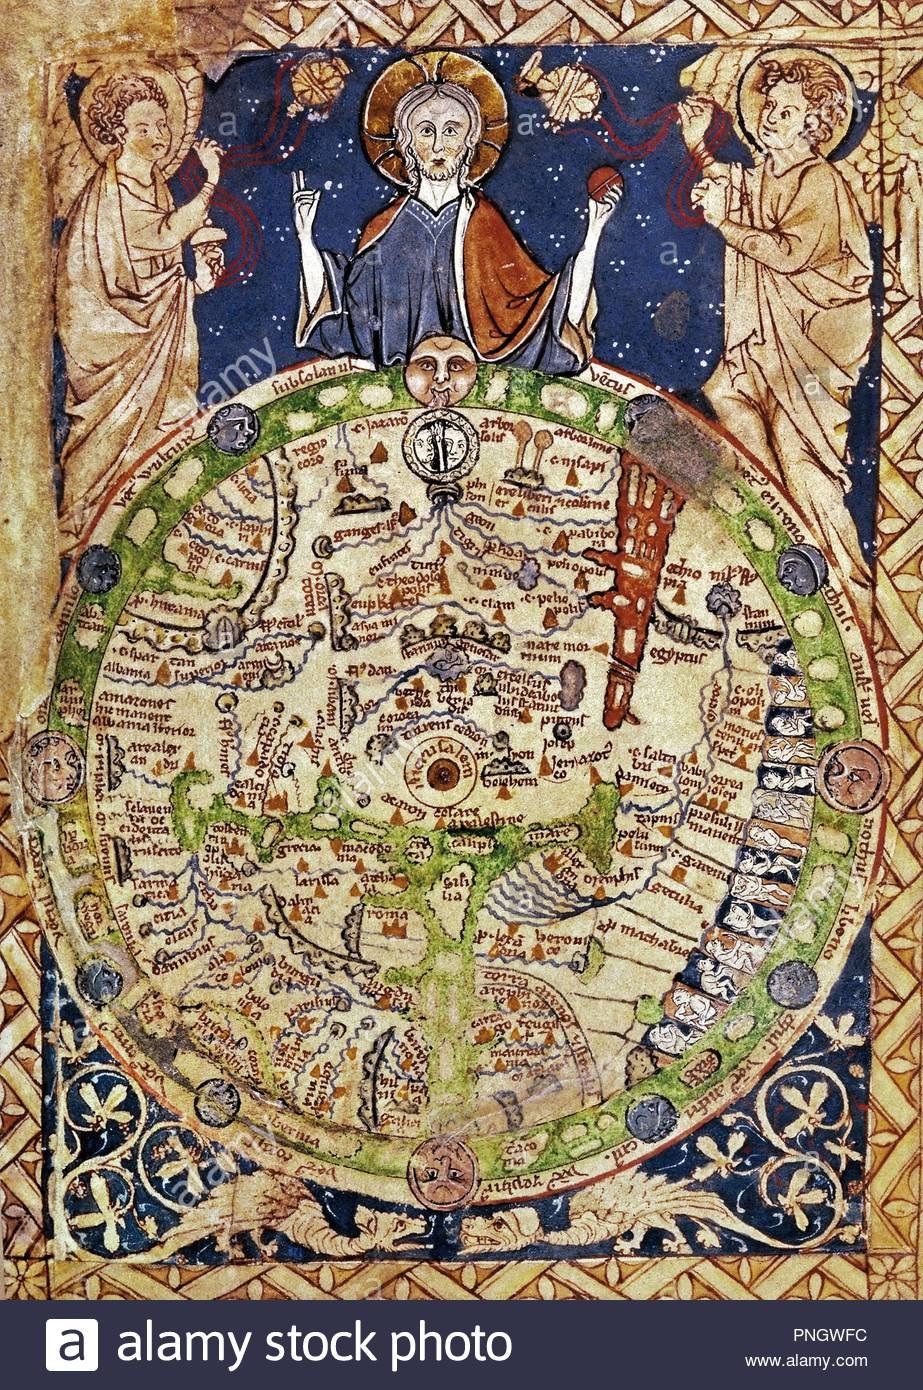 Jerusalem Center Of The World Map.Psalter Map Around 1250 Jerusalem In The Center Surrounded By A